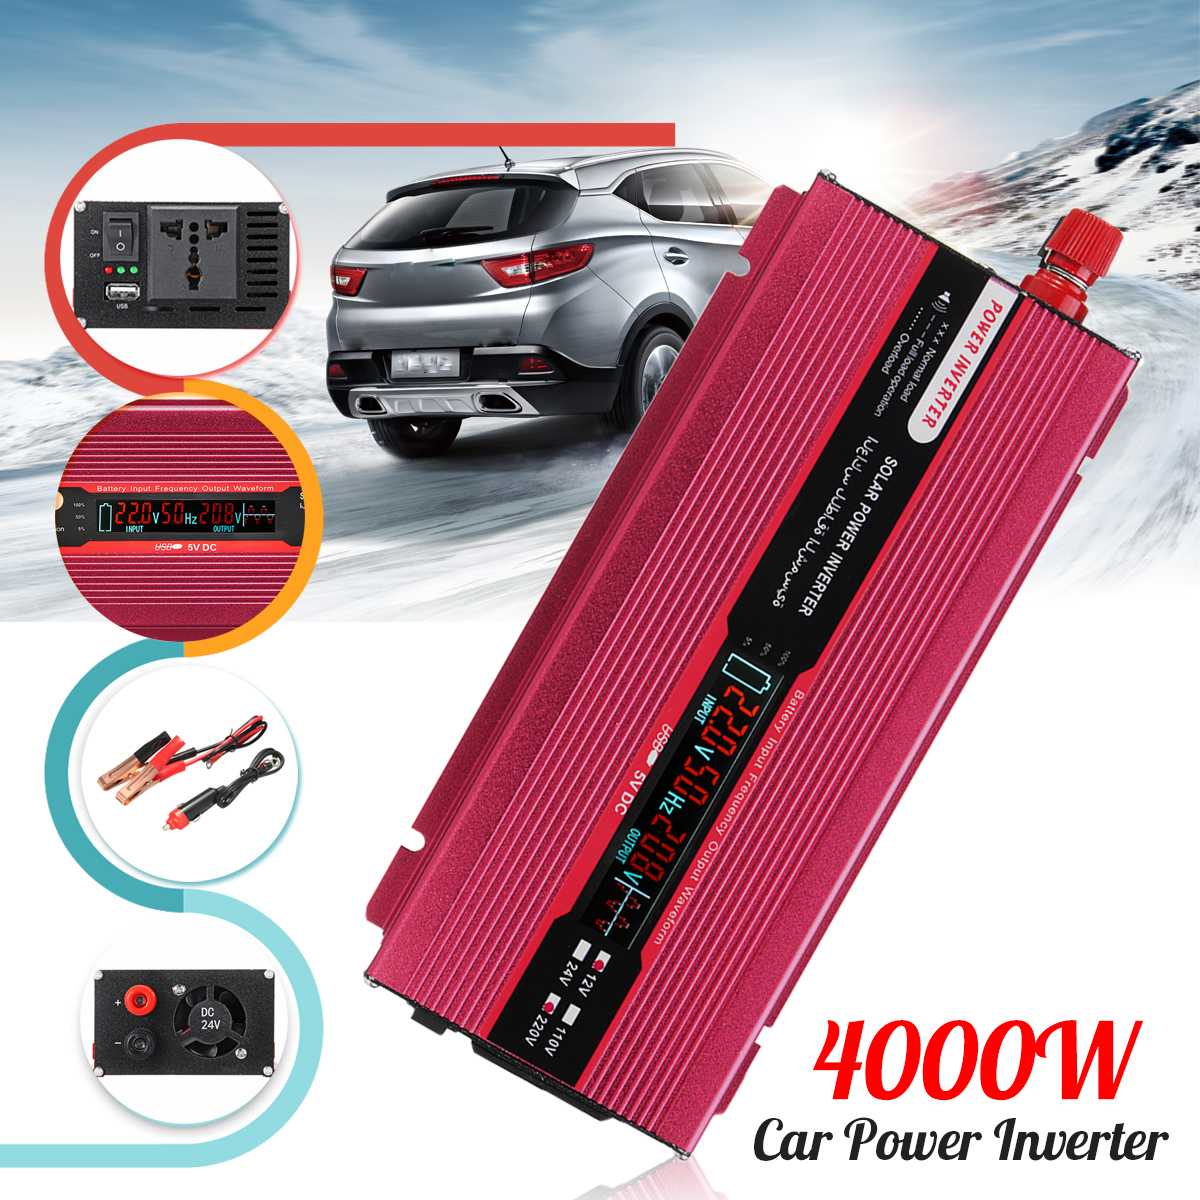 12/24V To AC 220/110V PEAK 4000W Car Power Inverter USB Modified Sine Wave Converter Voltage Transformer Display Efficiency 12 24v to ac 220 110v car power inverter converter peak 10000w usb modified sine wave voltage transformer universal intelligent